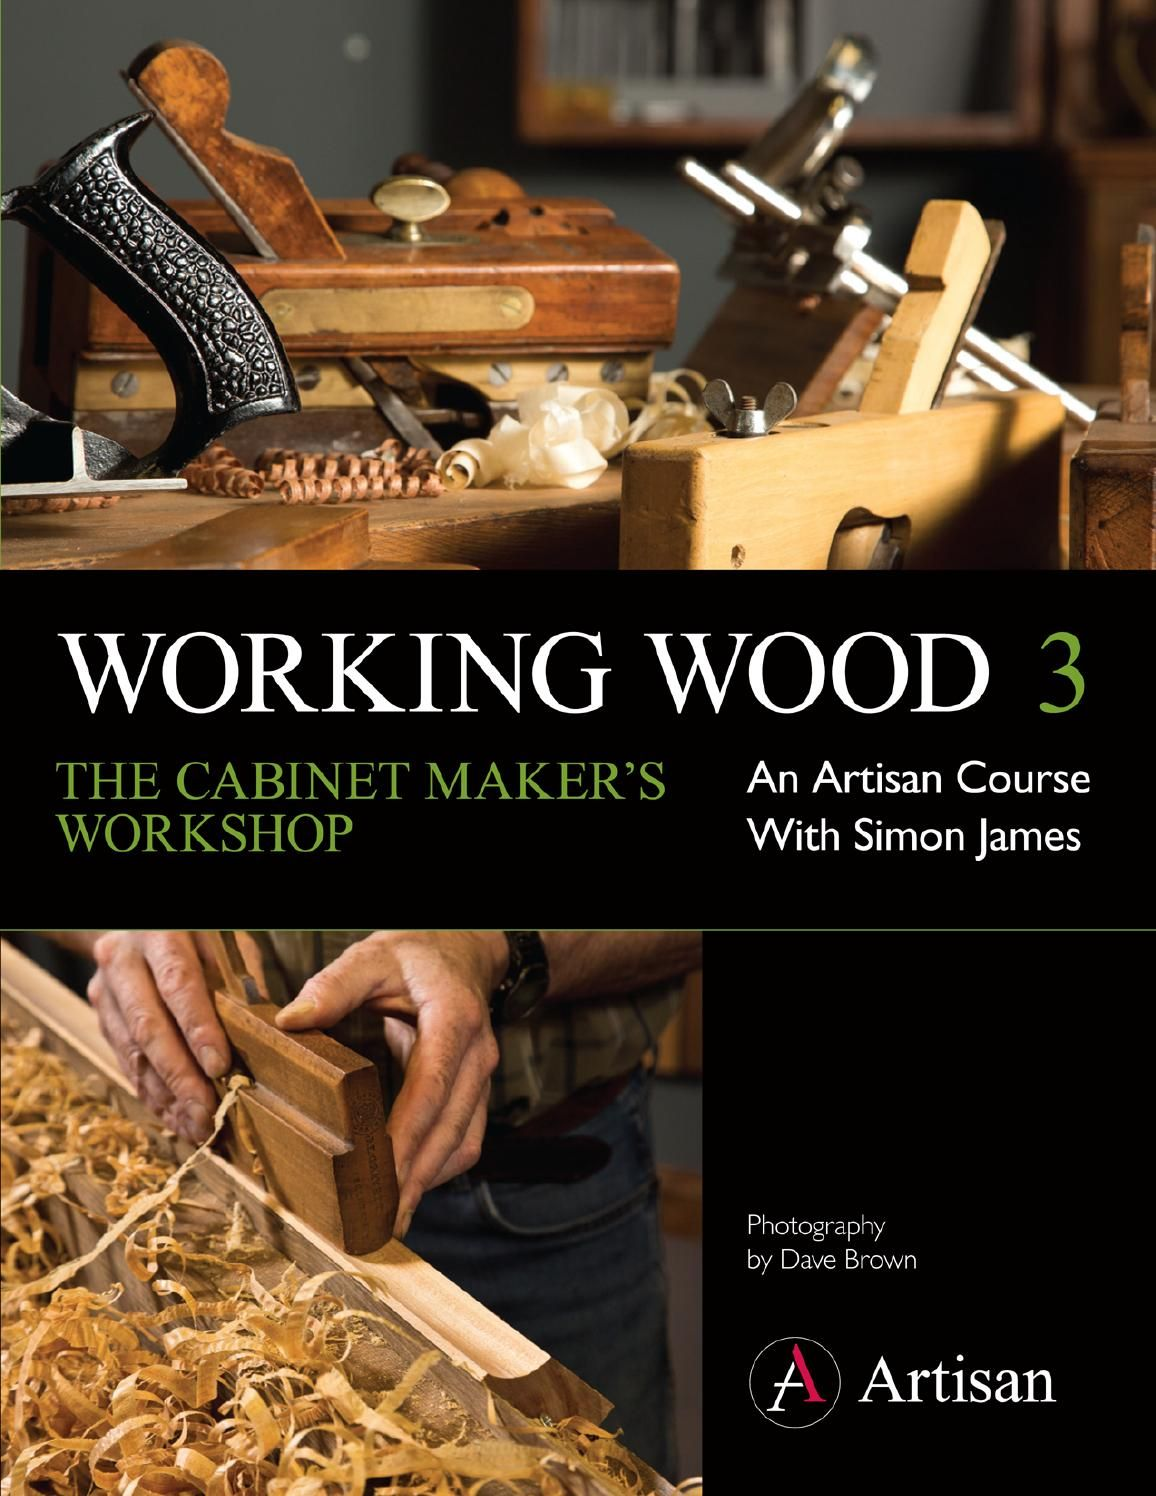 Working Wood 3: The Cabinet Maker's Workshop  Working Wood 3 is part of the Artisan course of books and accompanying DVDs providing clear and enjoyable woodwork teaching for all skill levels. Series 3 is about getting your workshop set up for cabinet making with a great array of shop-made jigs and tools and new techniques.